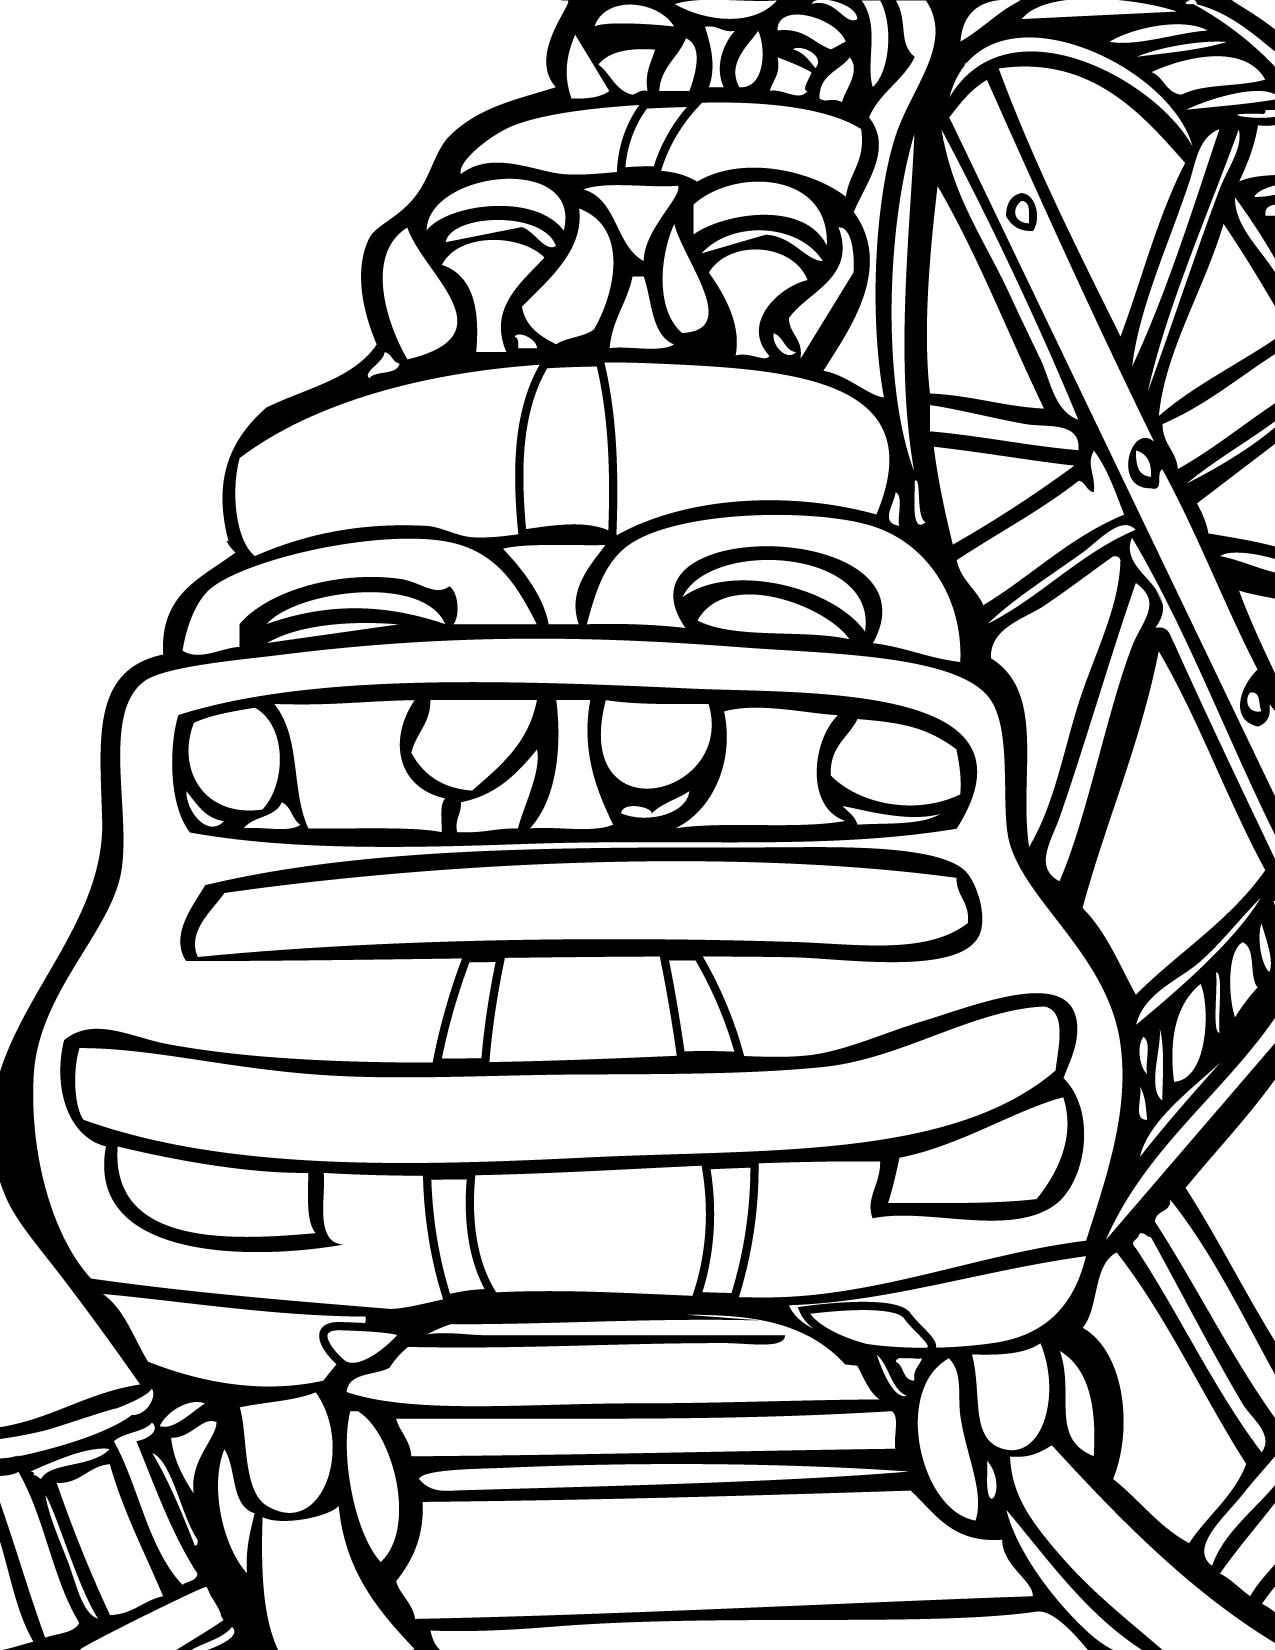 Rollercoaster Coloring Page